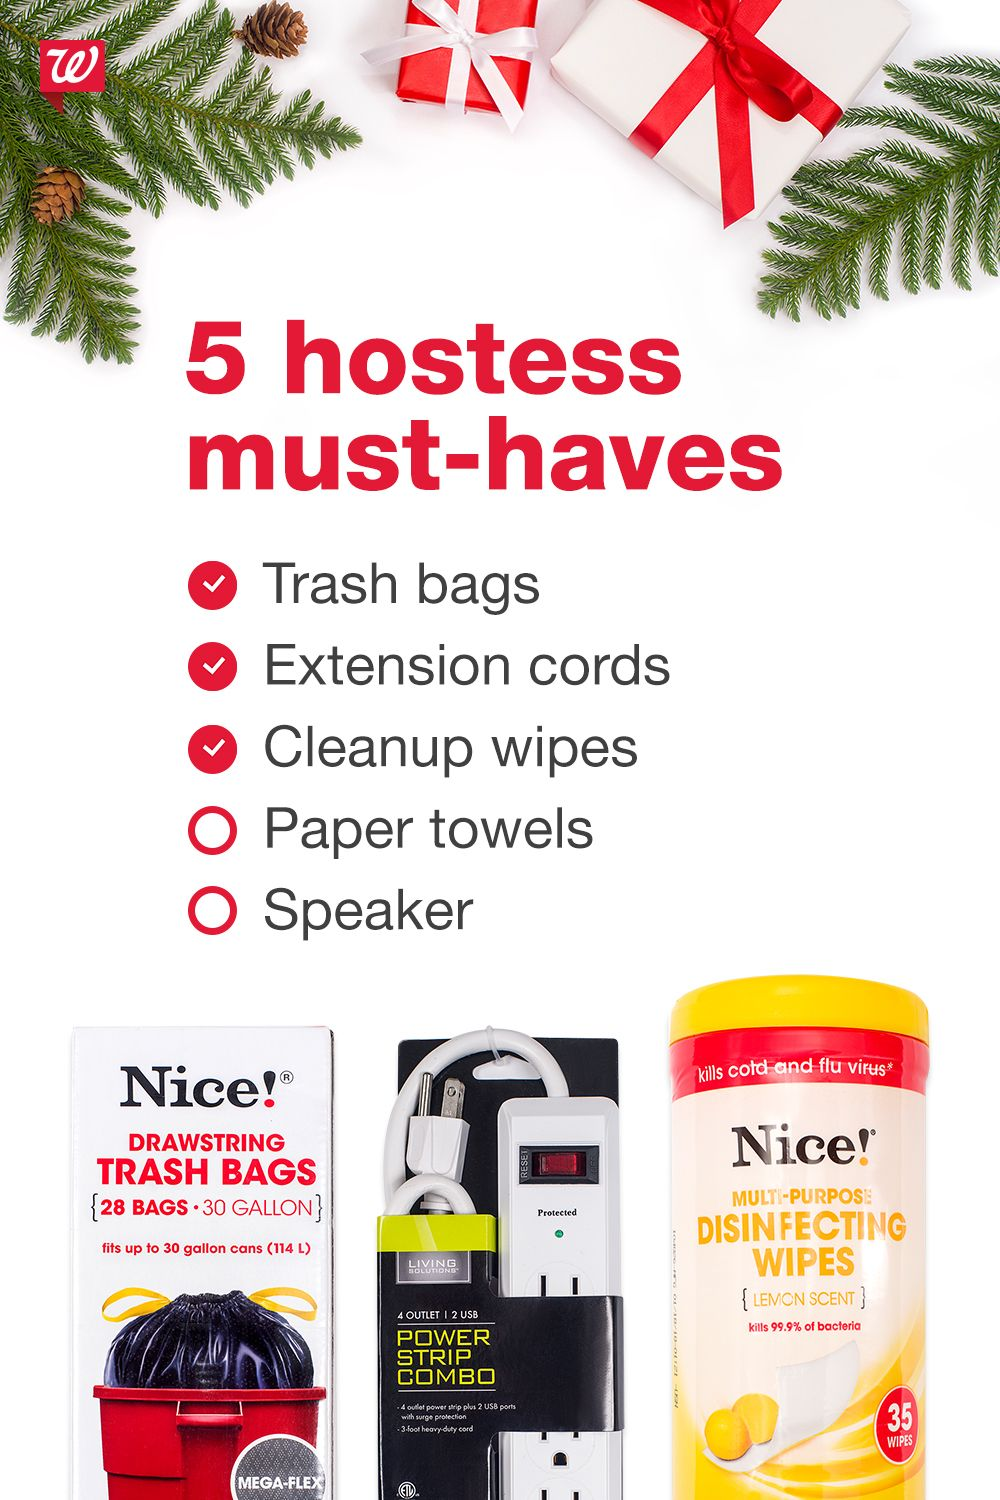 For any holiday party, make sure you have these essentials